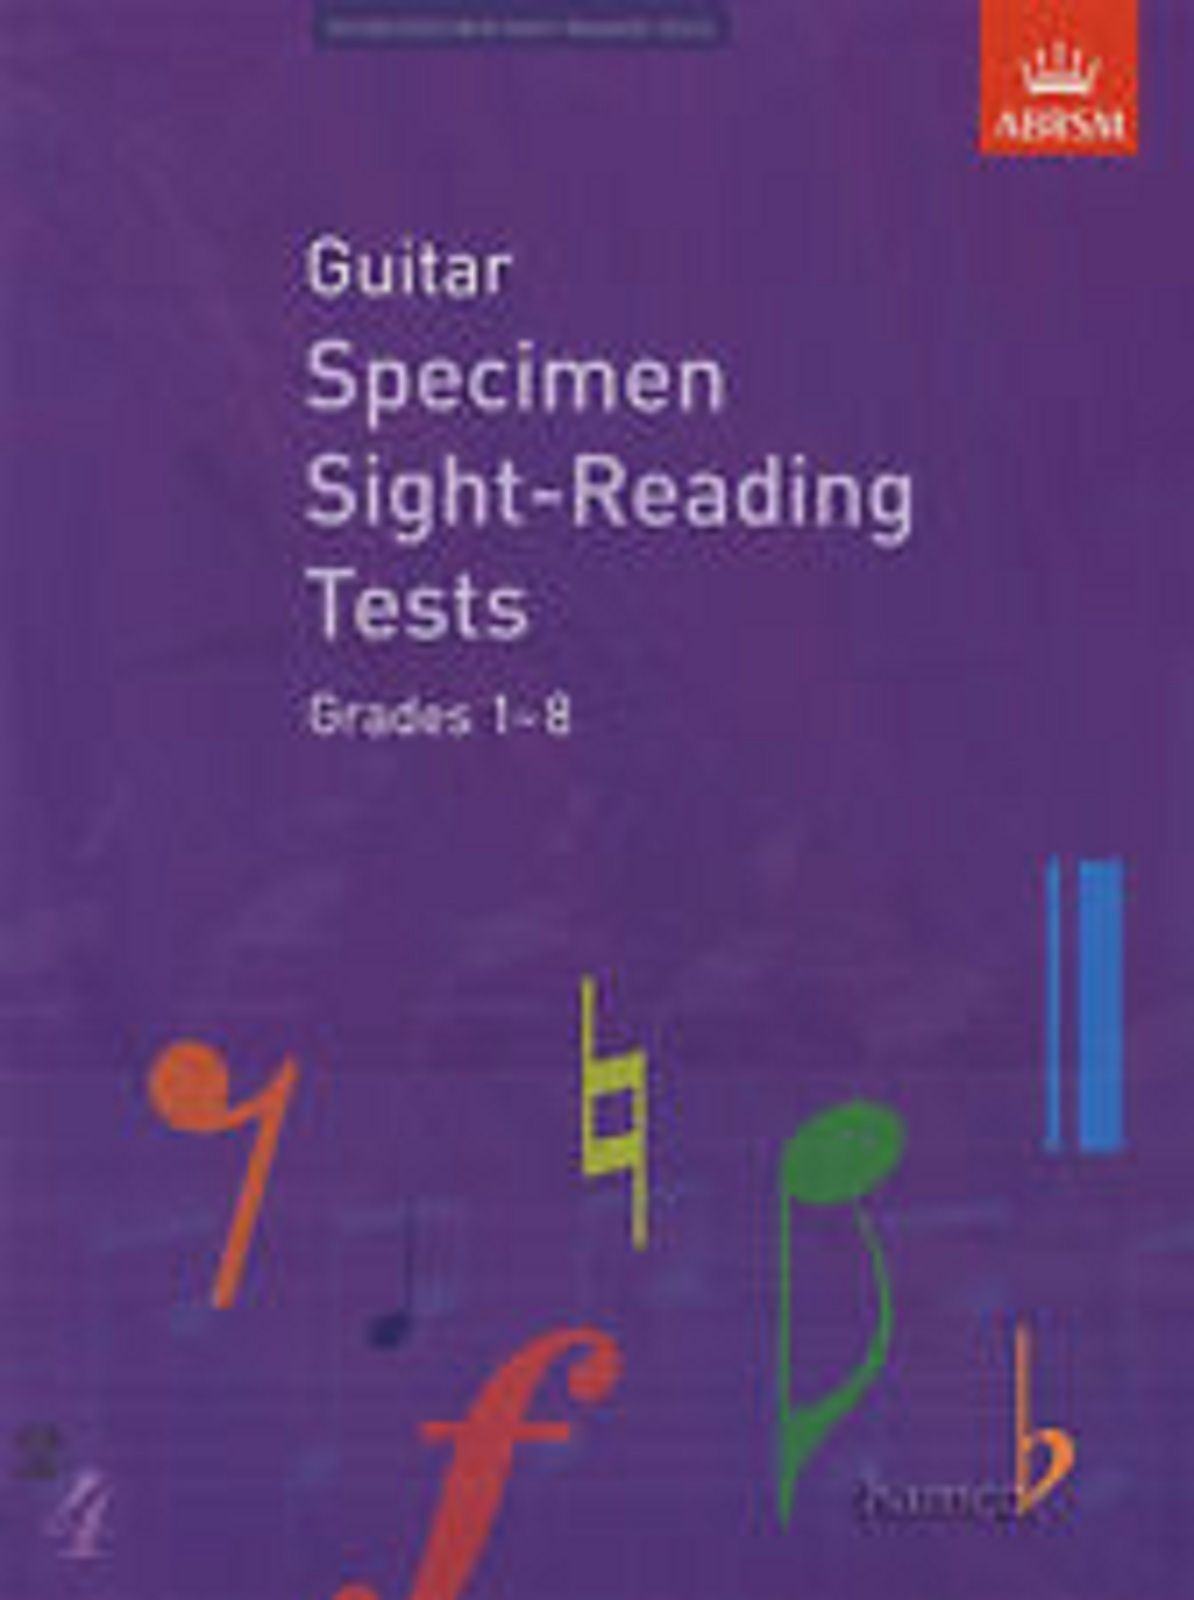 Guitar Specimen Sight-Reading Tests Grades 1-8 ABRSM from 2009 Exam Book S126